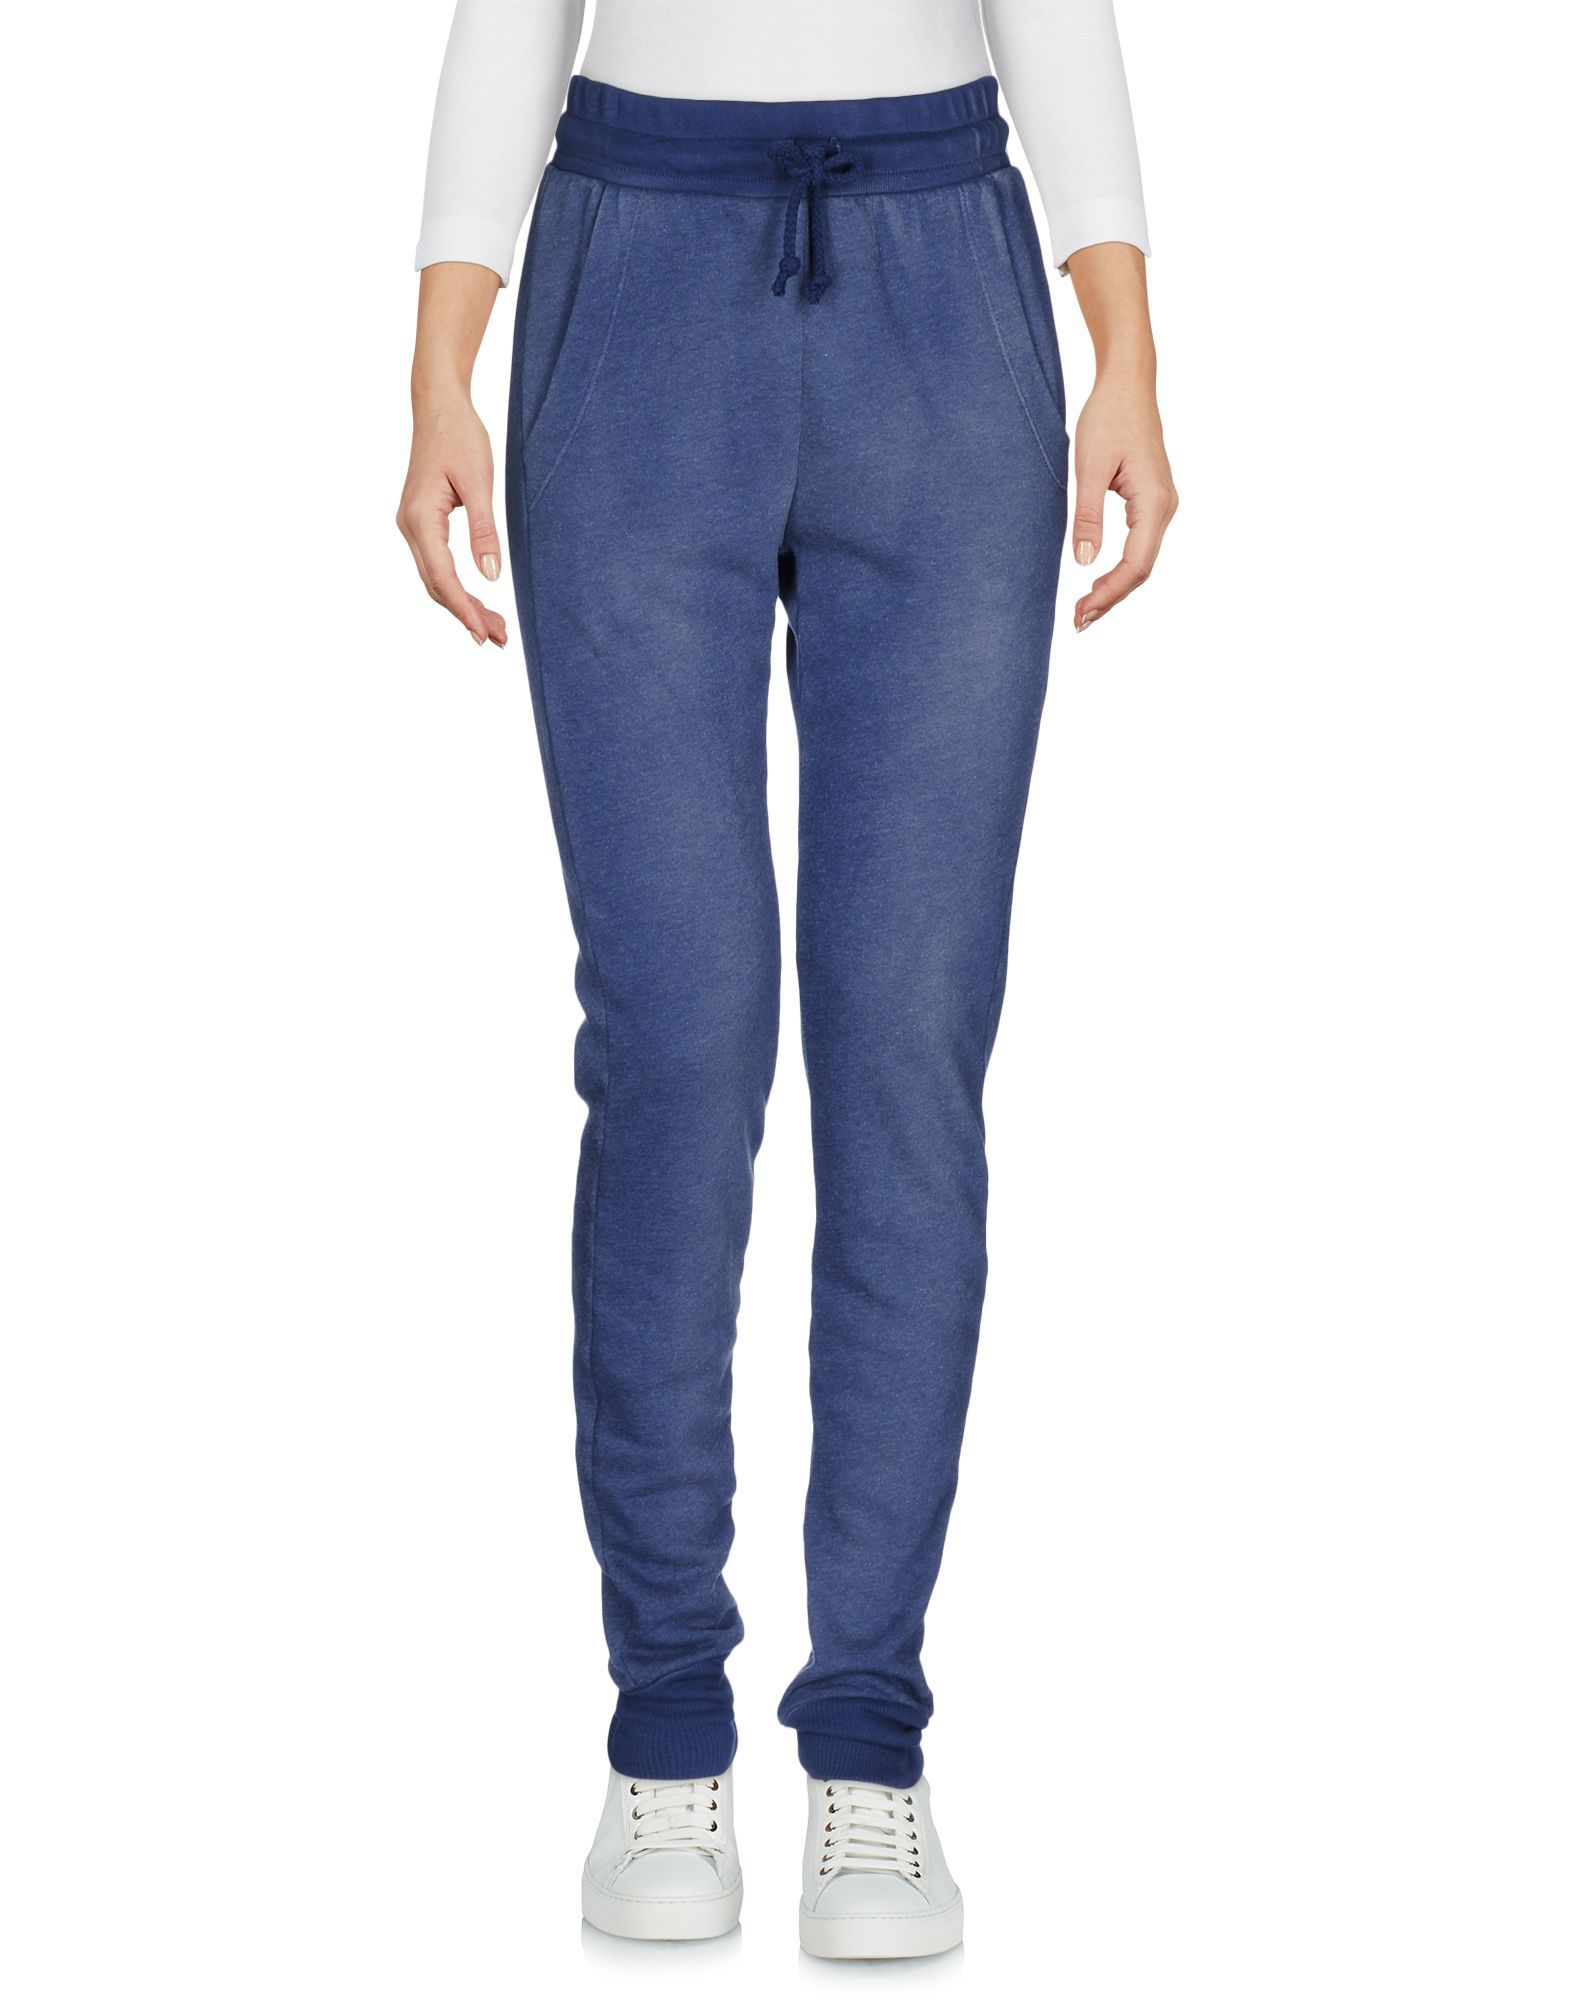 Wildfox Blue Cotton Trousers